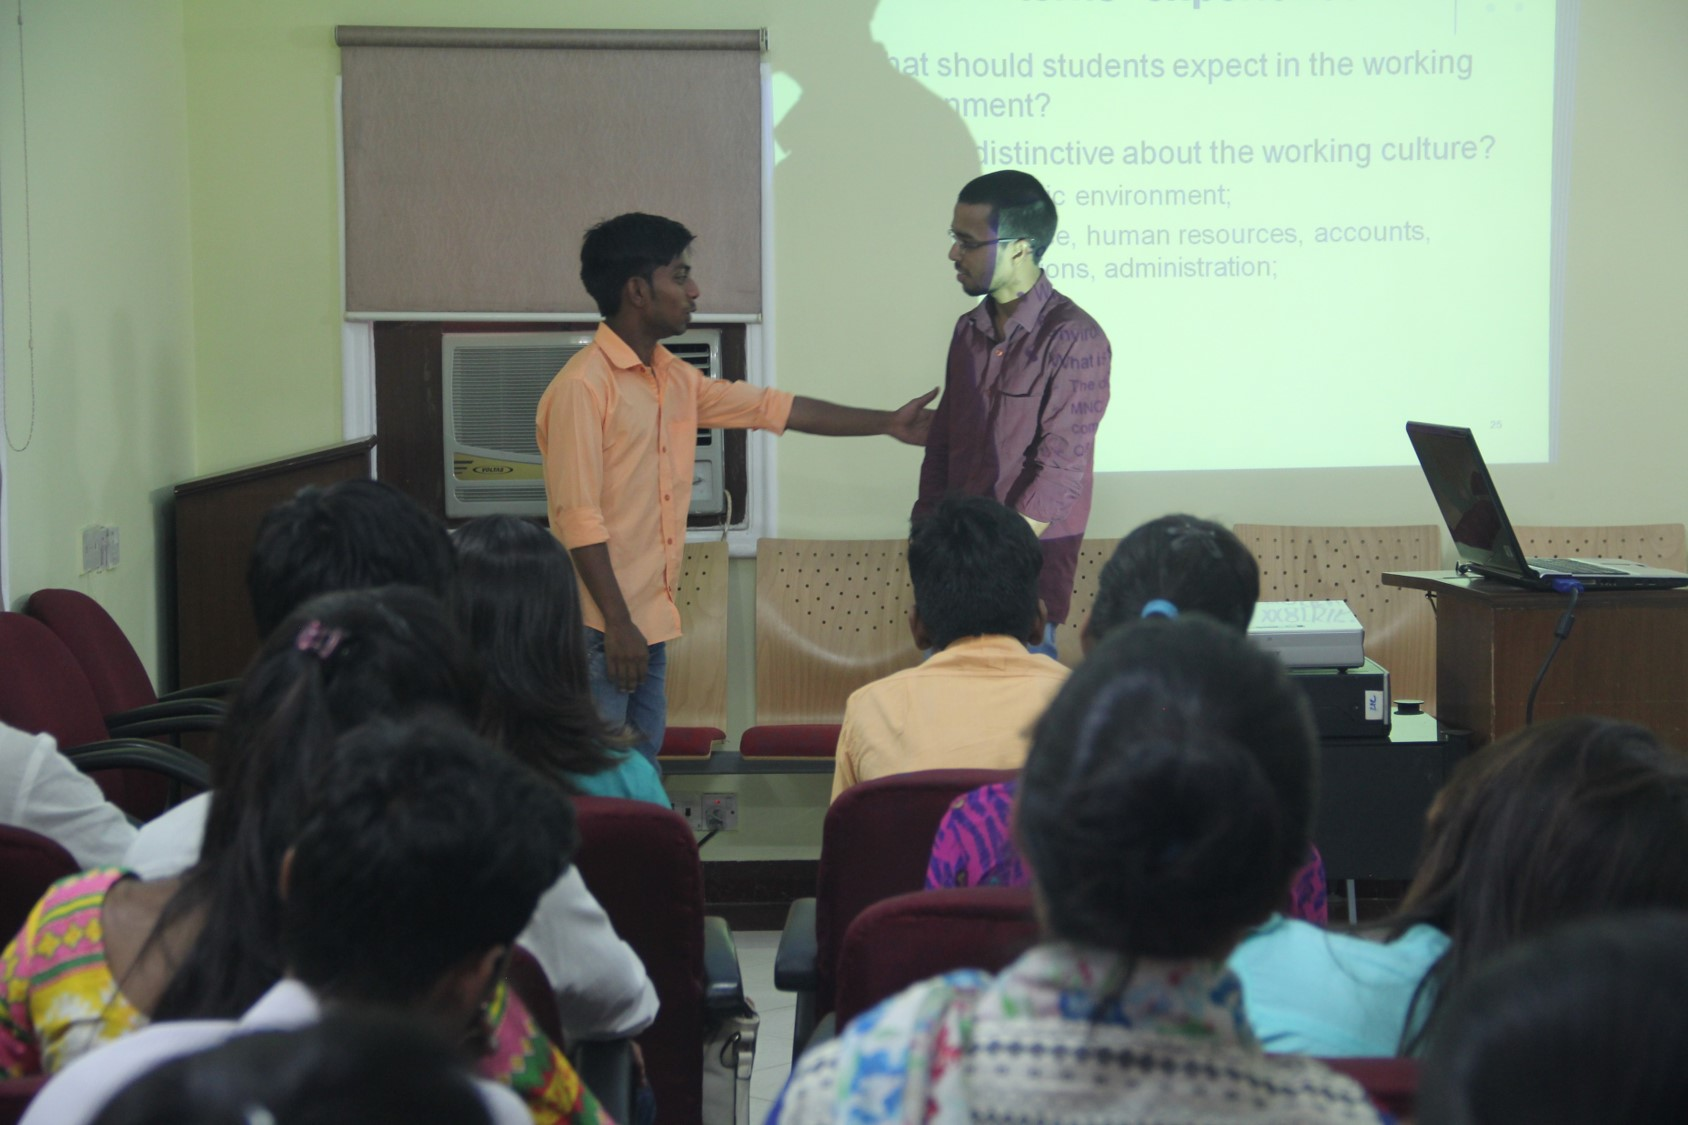 Ajay and Deepak sharing their experiences through role plays and group discussions